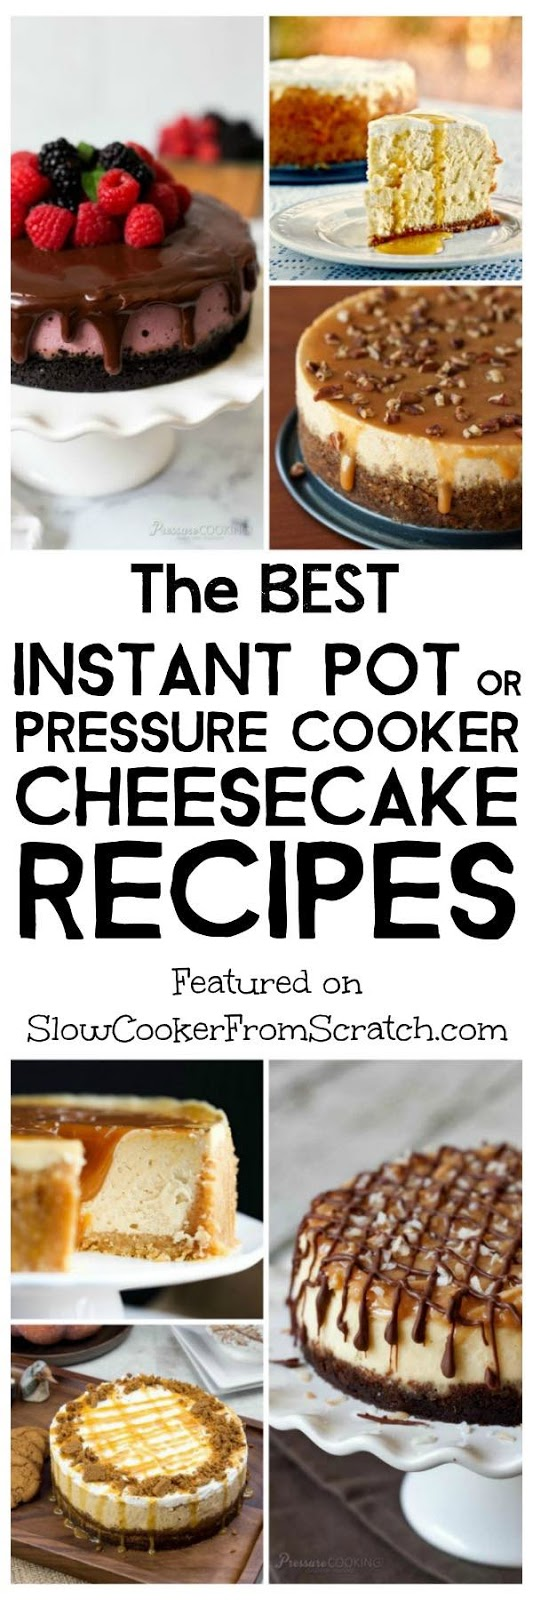 The best instant pot or pressure cooker cheesecake recipes for Best instant pot pressure cooker recipes